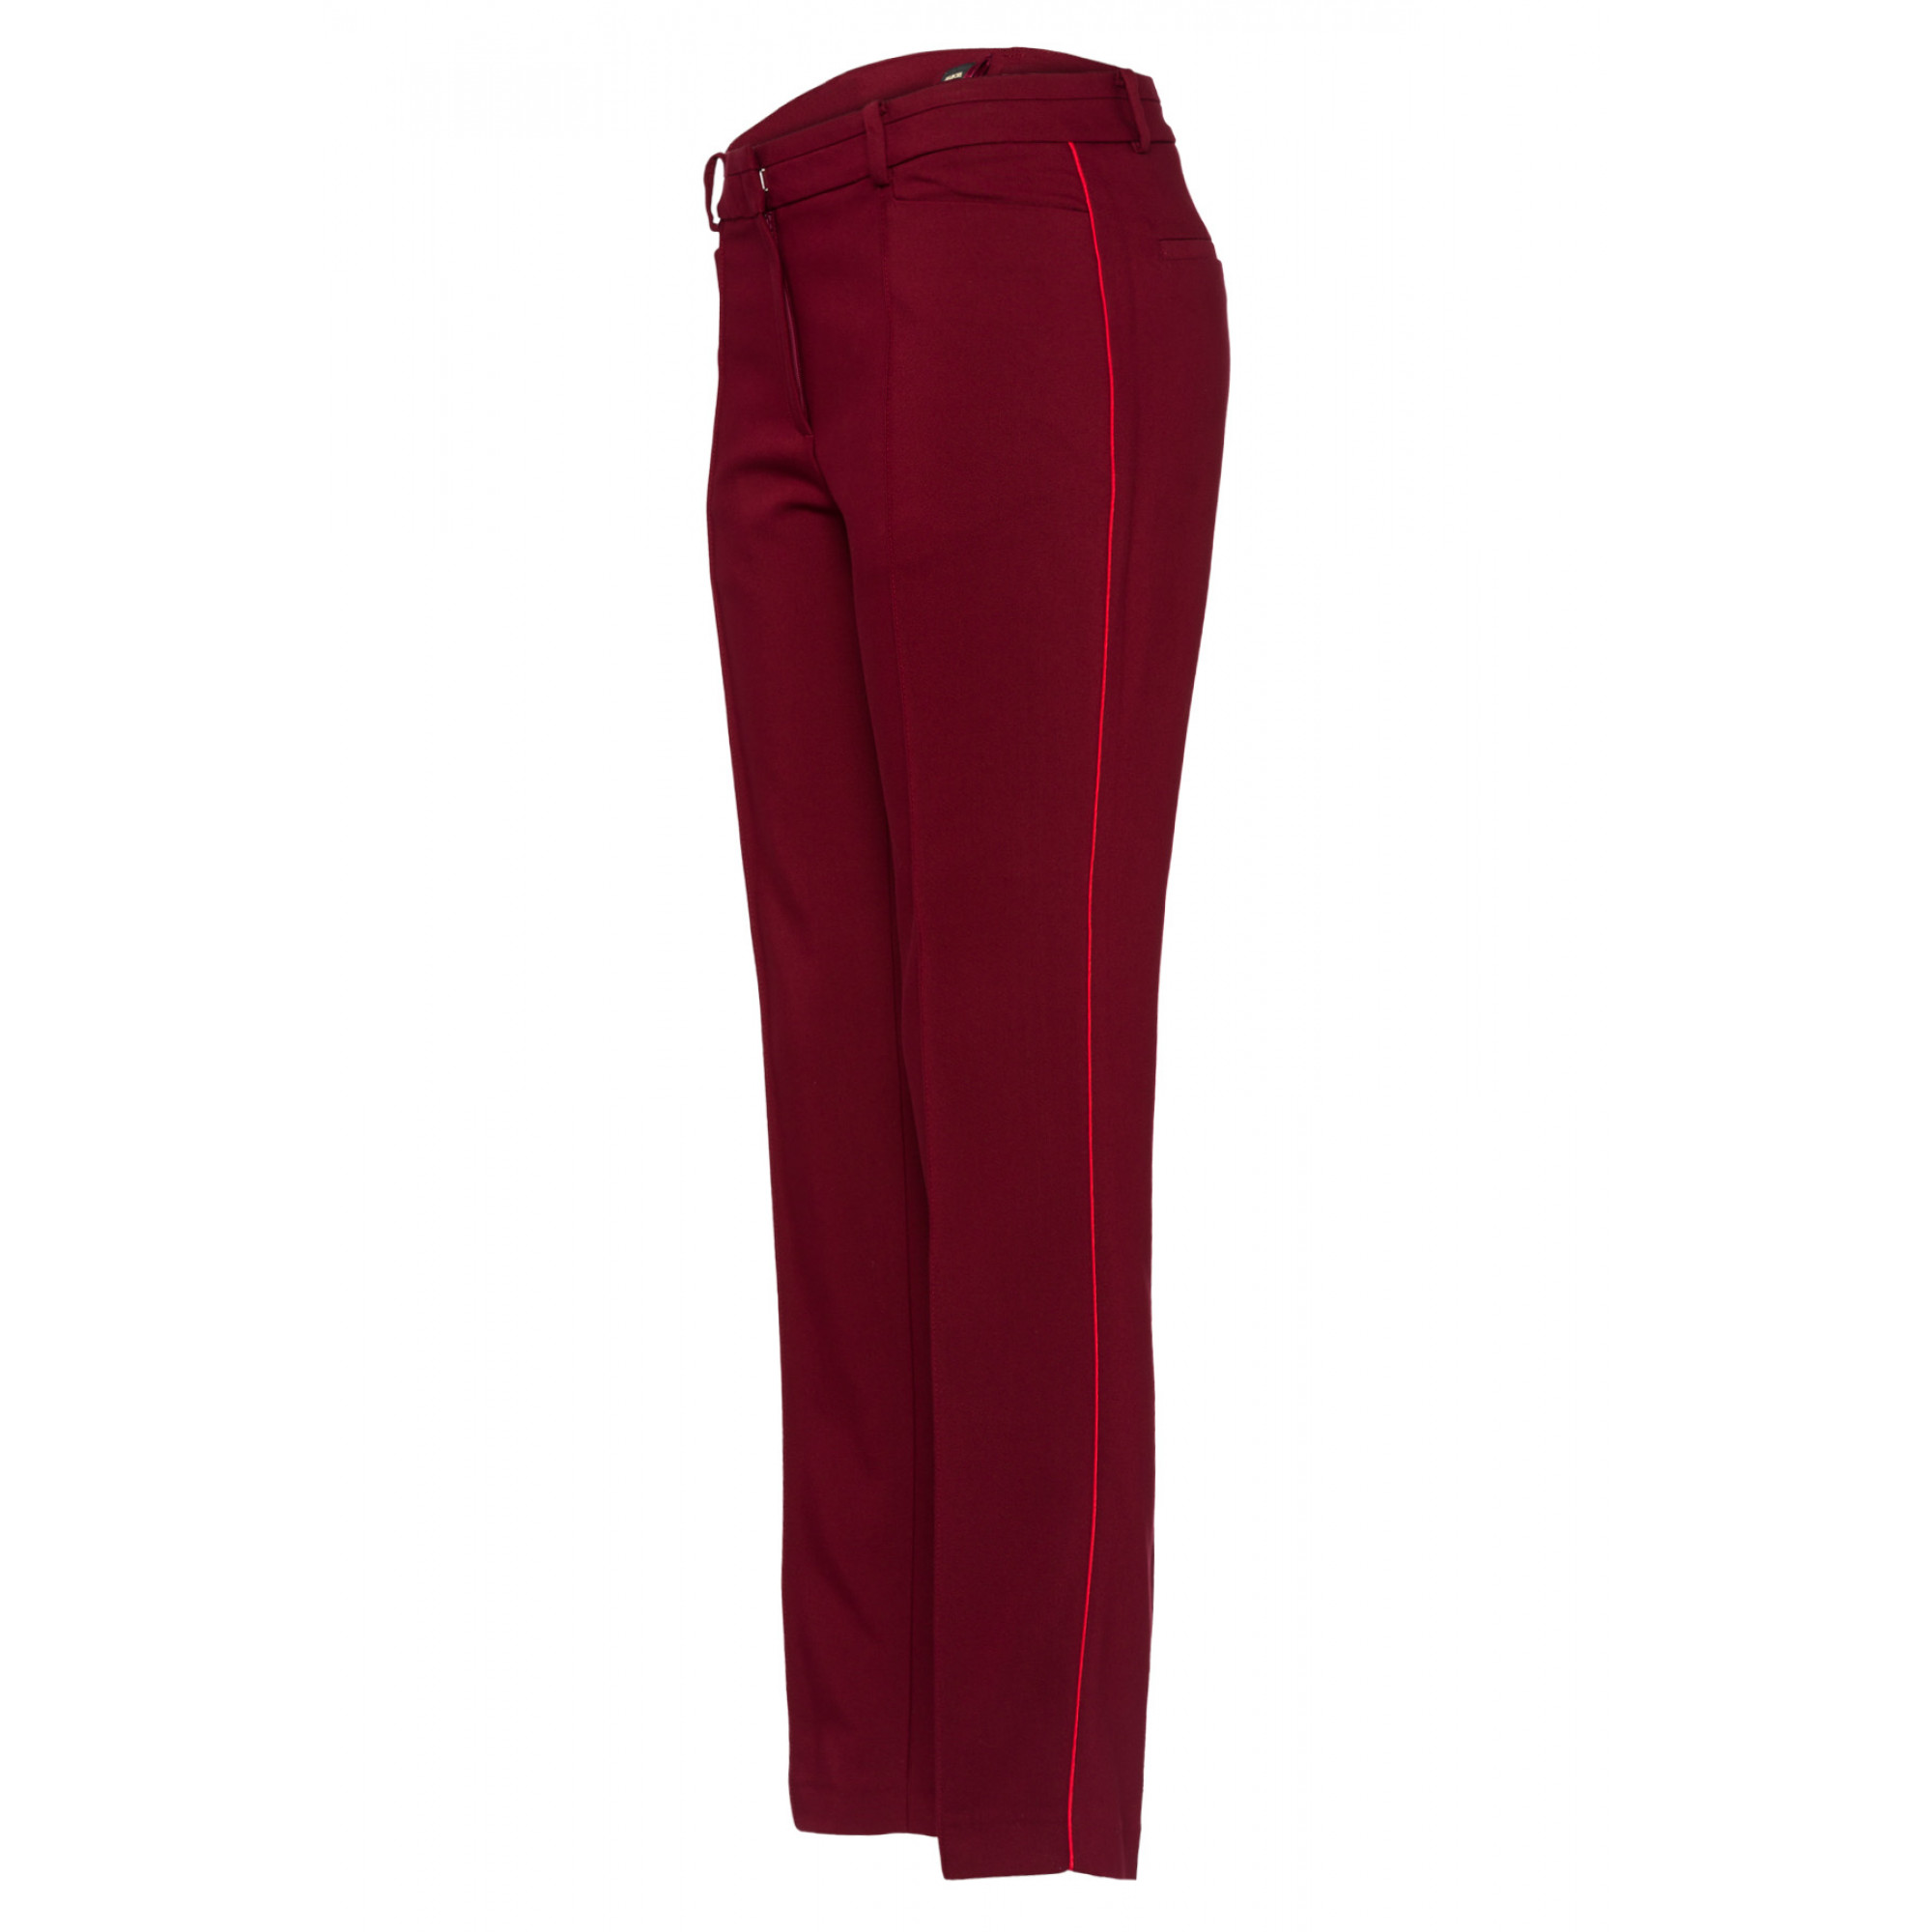 Hose, wine red, Hedy 91084061-0548 1